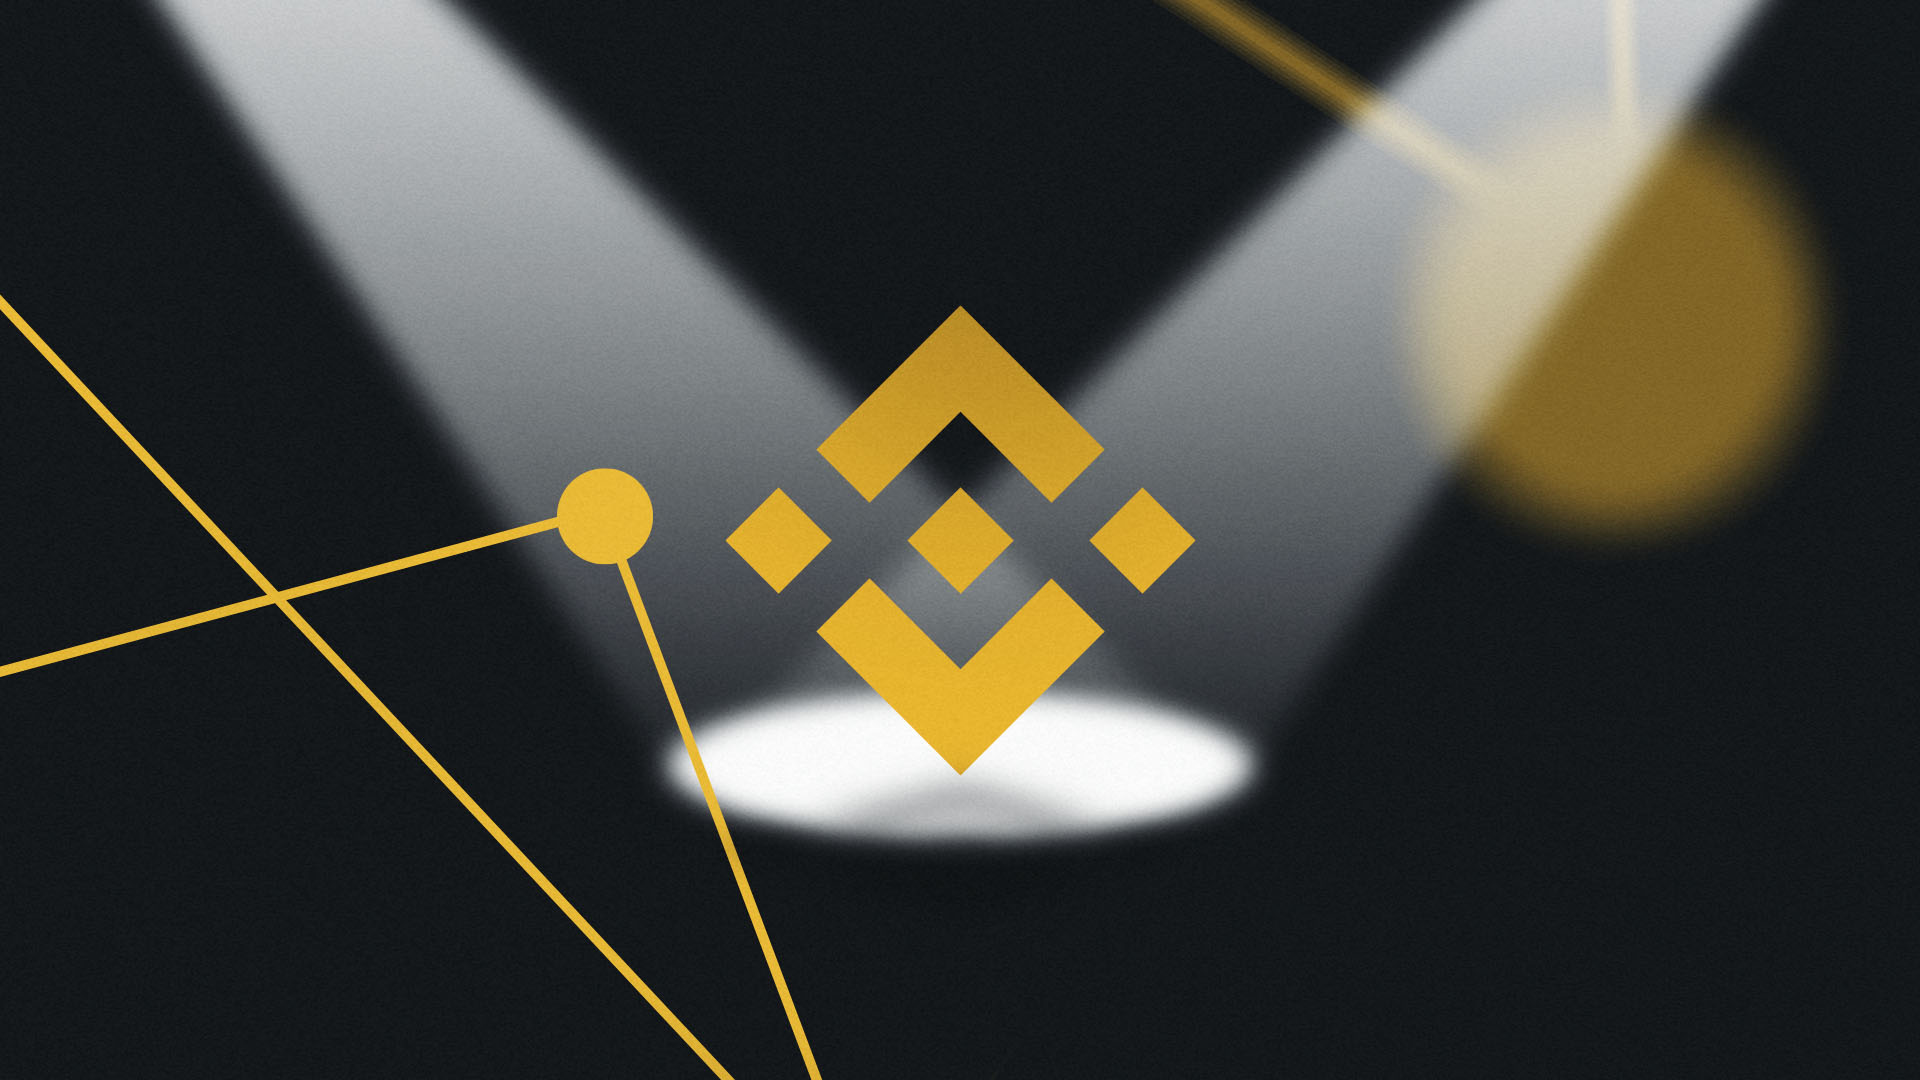 Binance logo in spotlight on black background because its getting hunted over money laundering concerns.